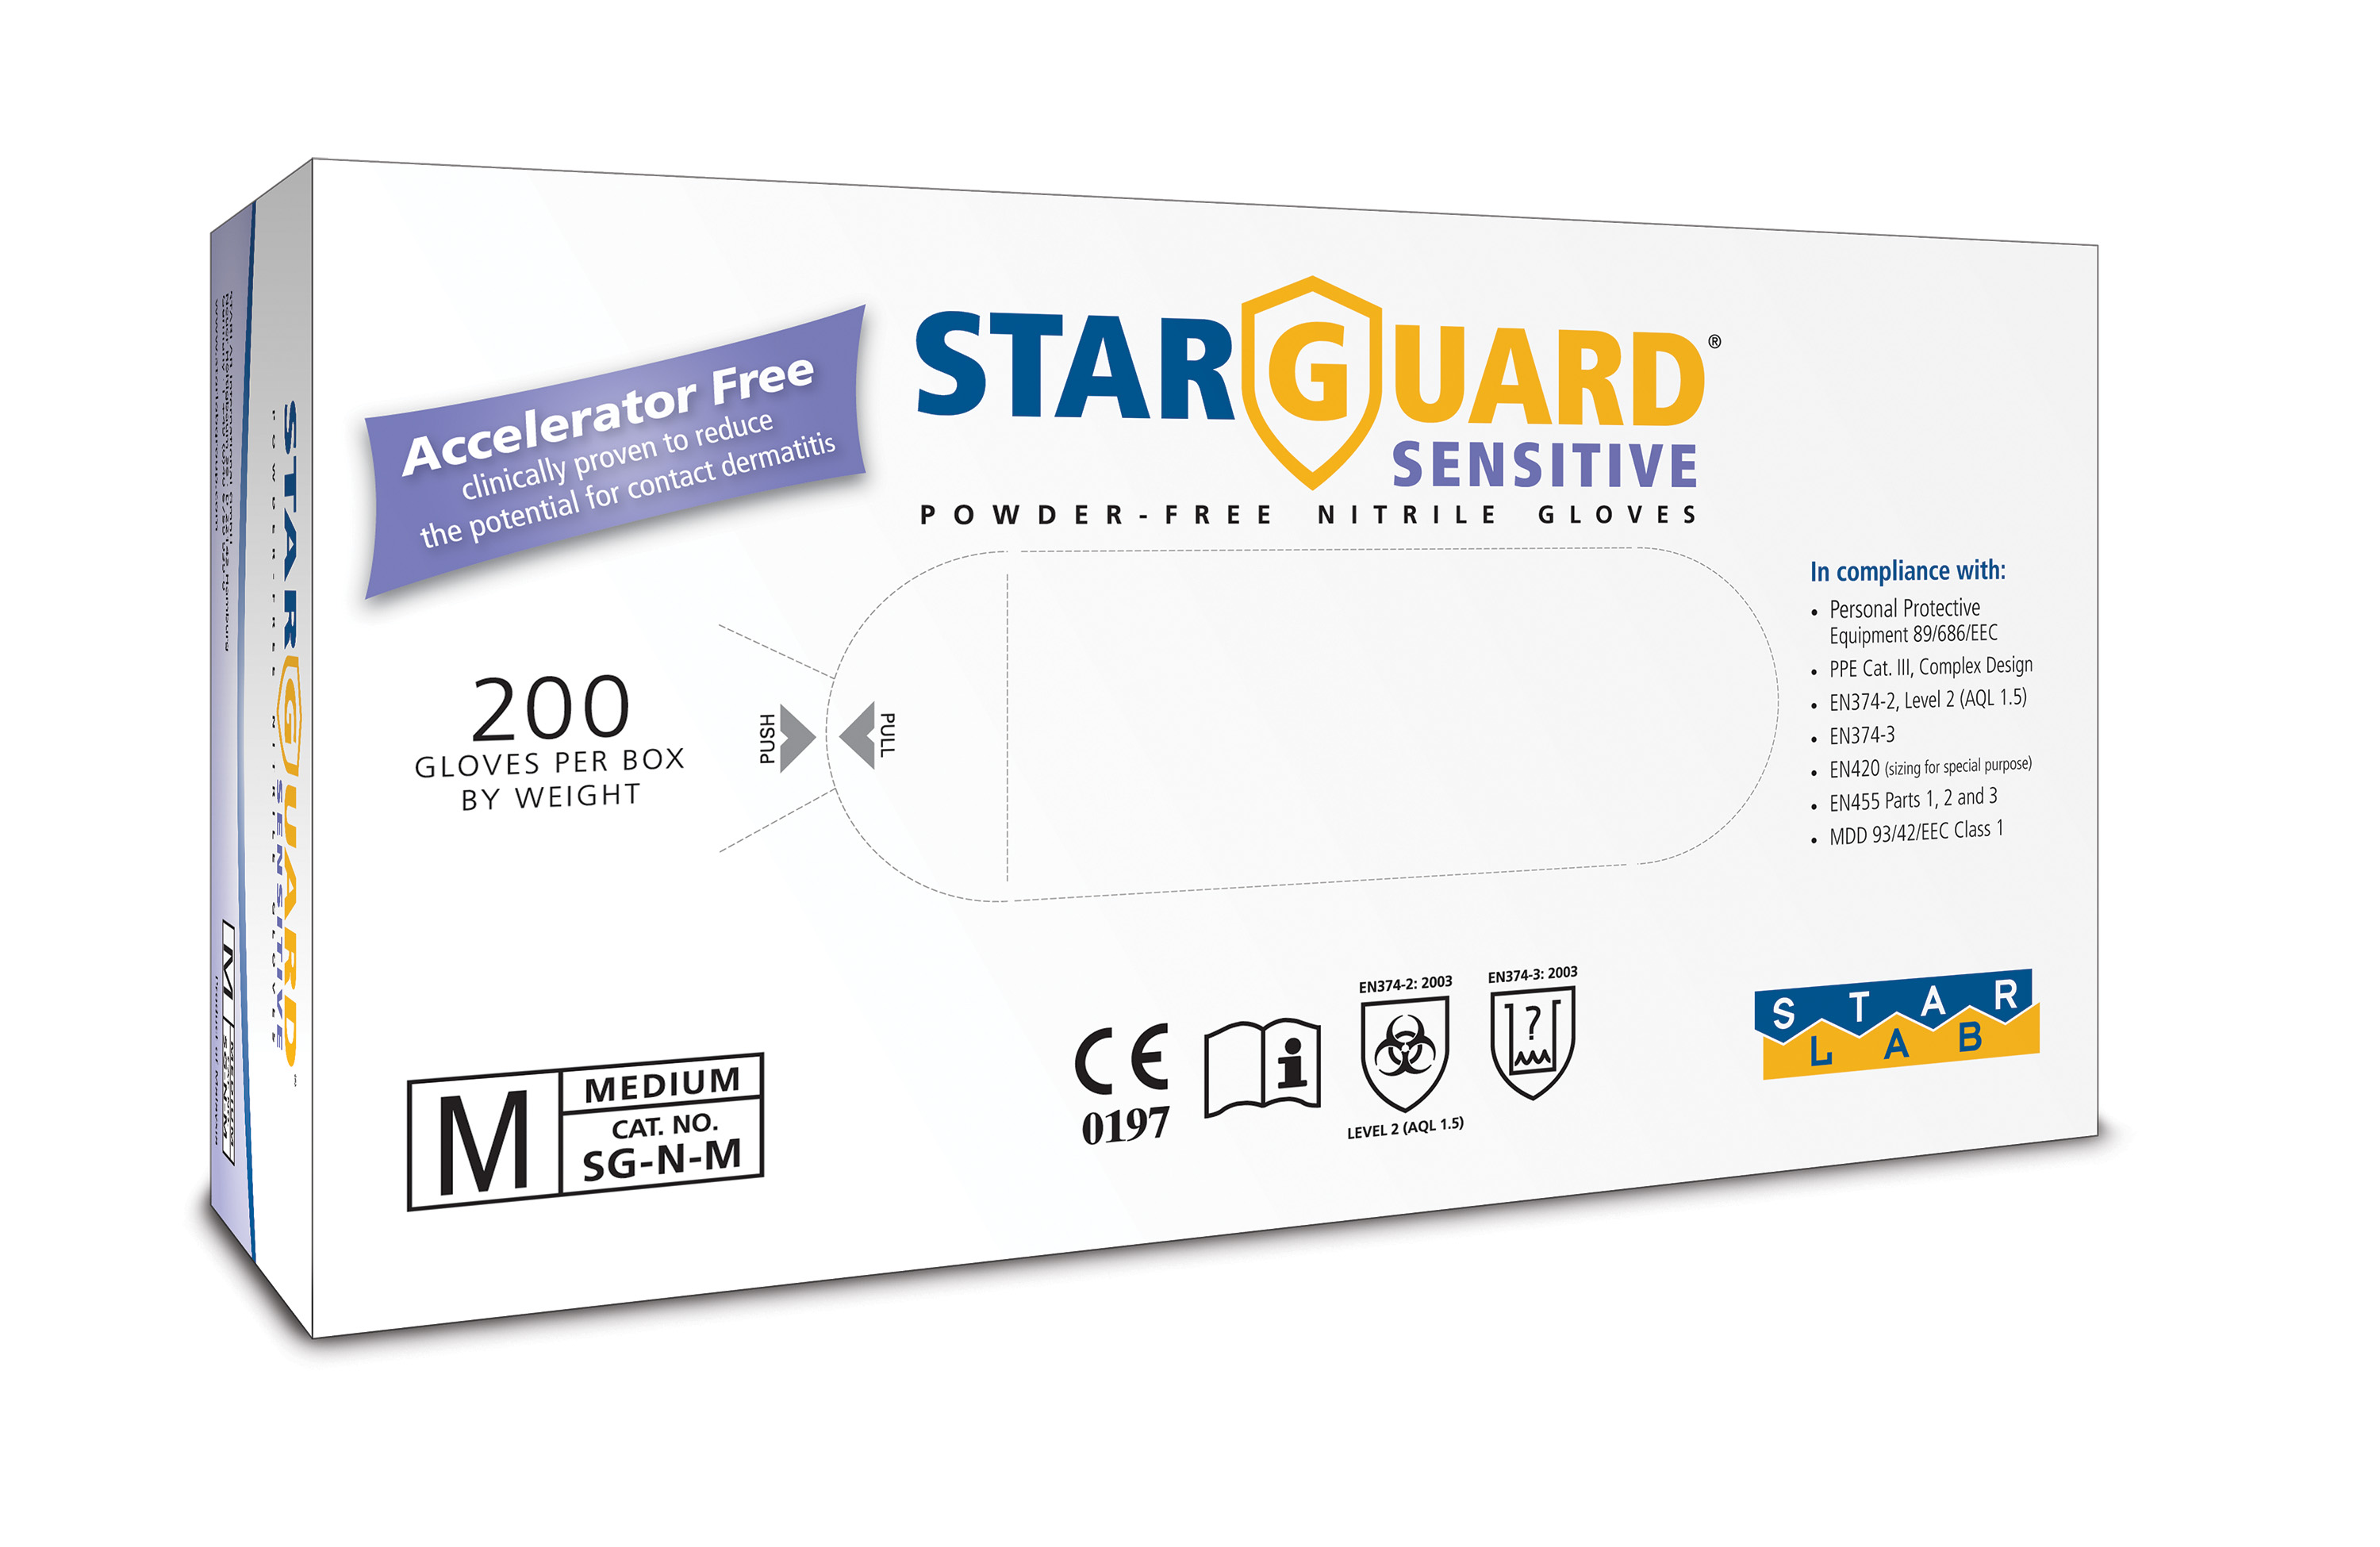 StarGuard SENSITIVE Nitrile Gloves, Powder Free, Blue, Size M, Pk/ 10 x 200 gloves - just sFr. 7,85/100 gloves